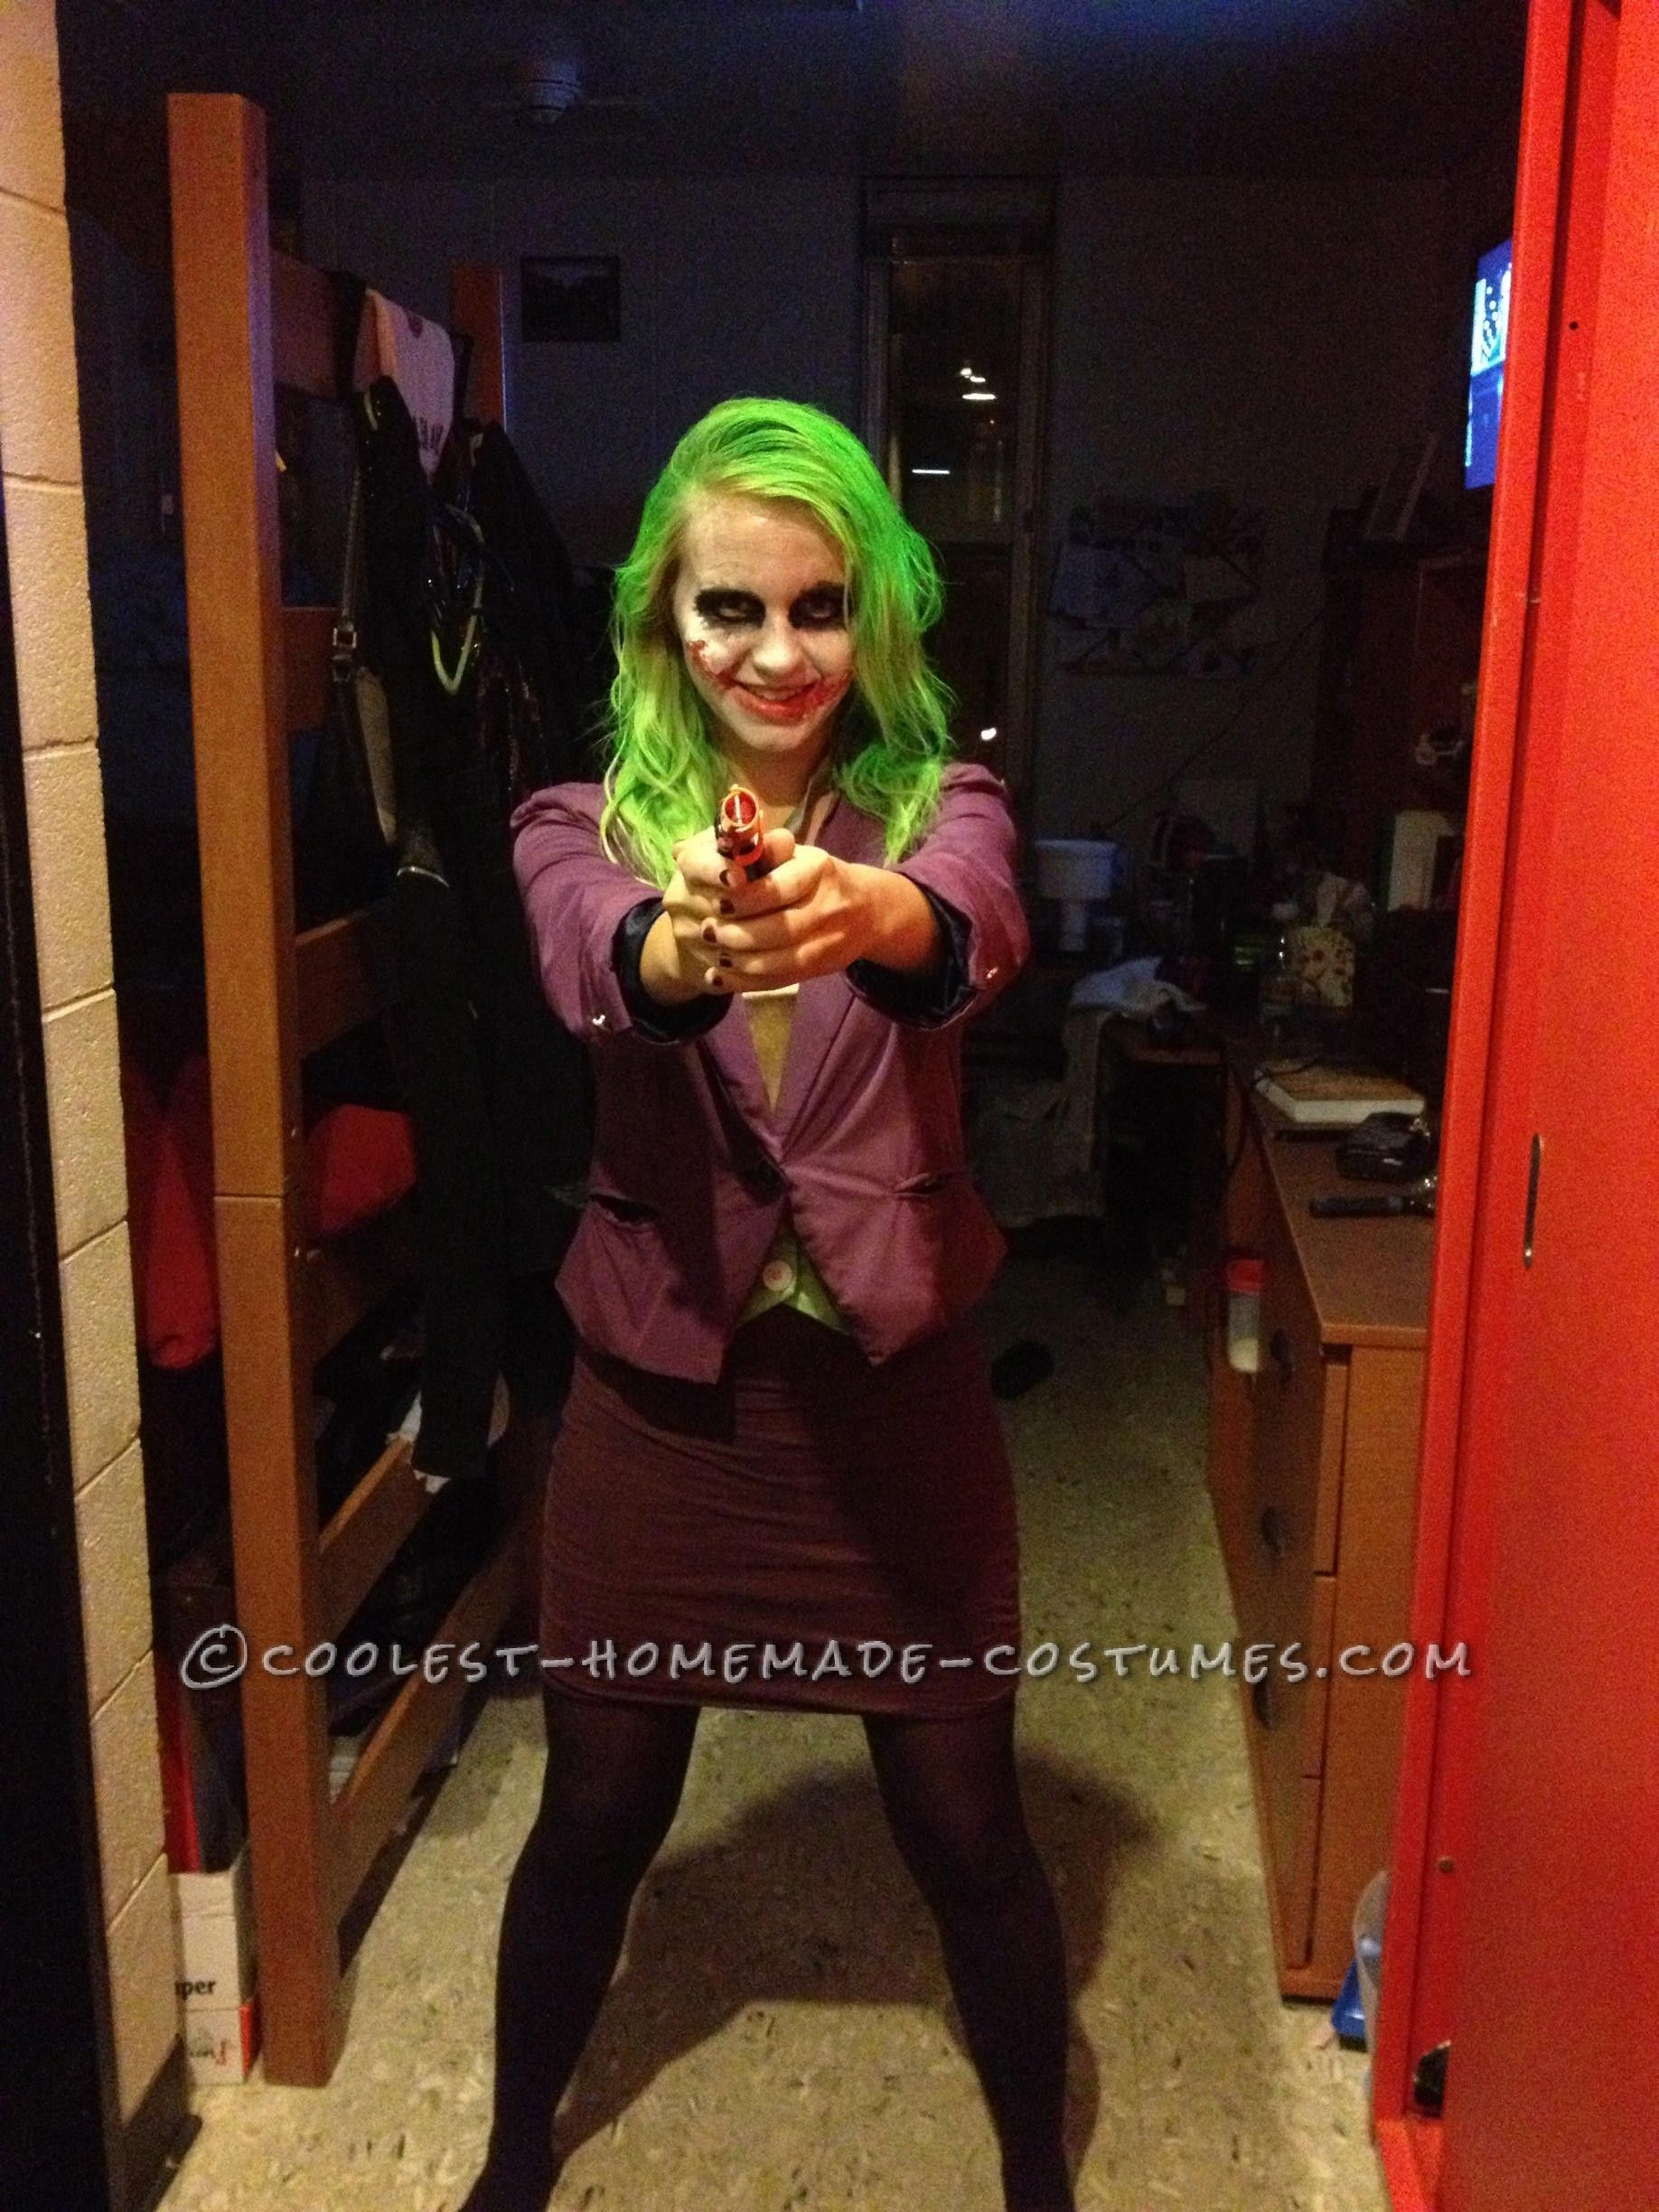 coolest homemade joker halloween costume | coolest homemade costumes